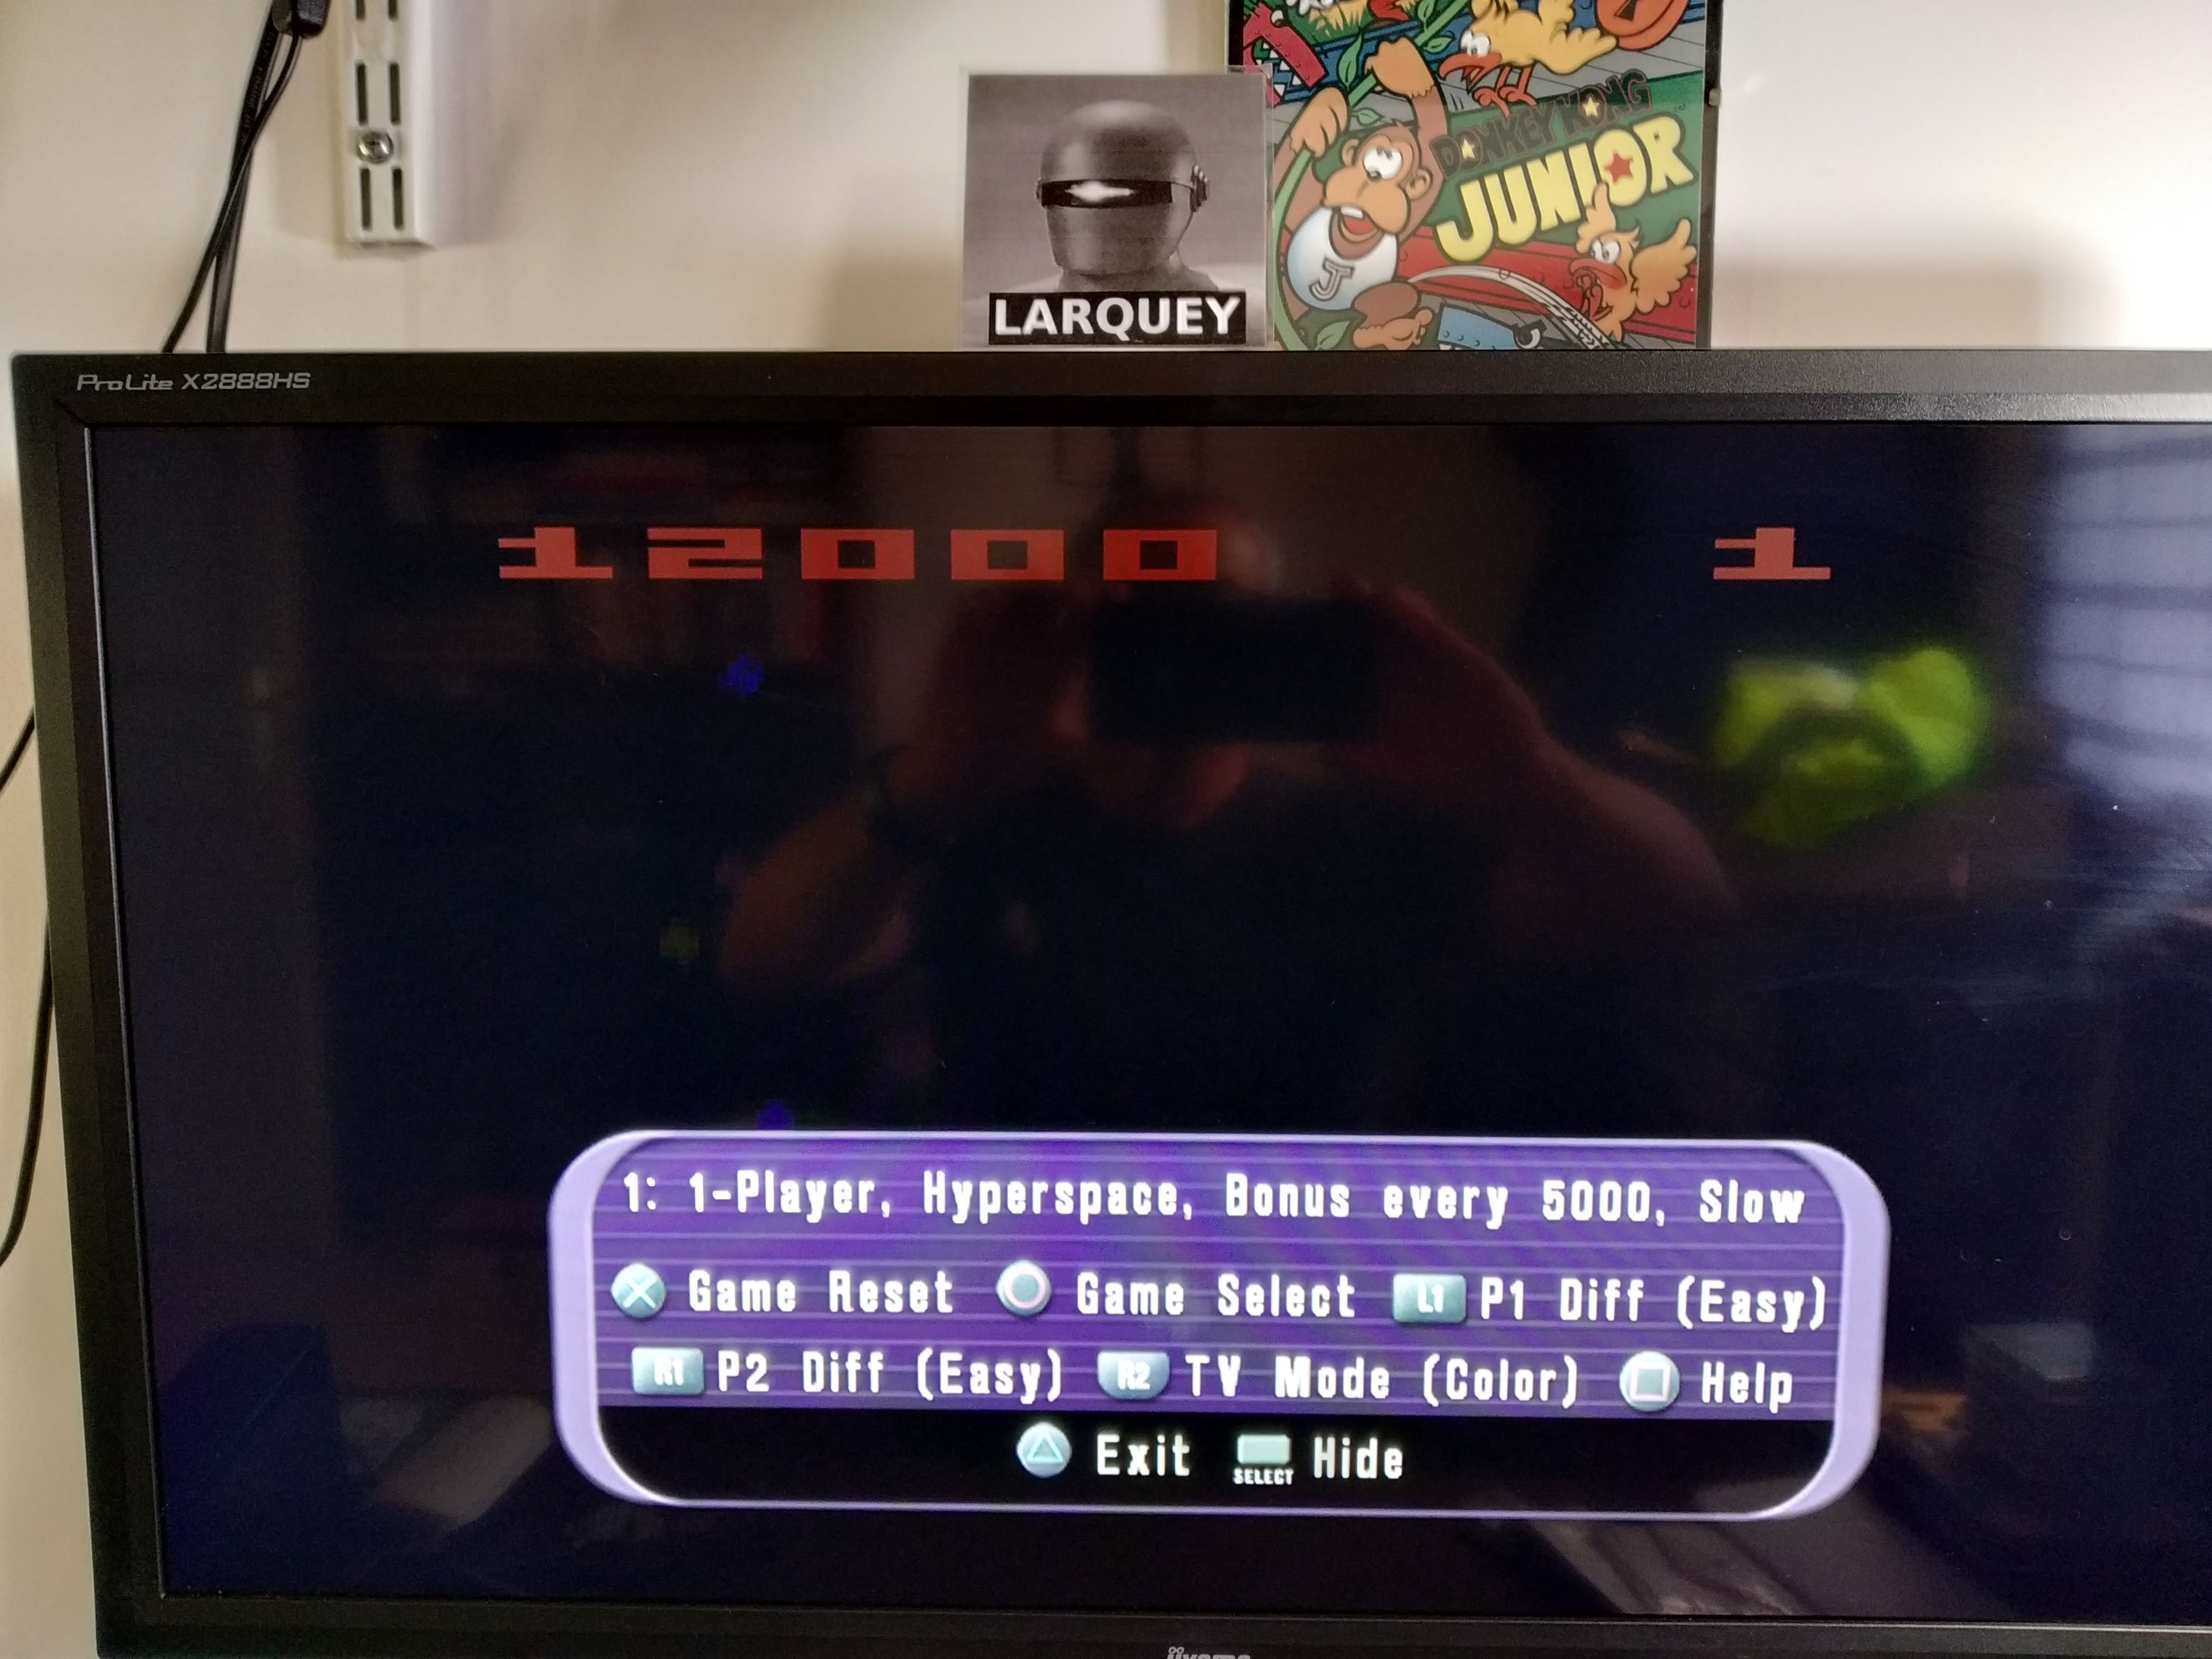 Larquey: Atari Anthology: Asteroids - home version [Game 1B] (Playstation 2 Emulated) 12,000 points on 2020-08-03 13:20:46